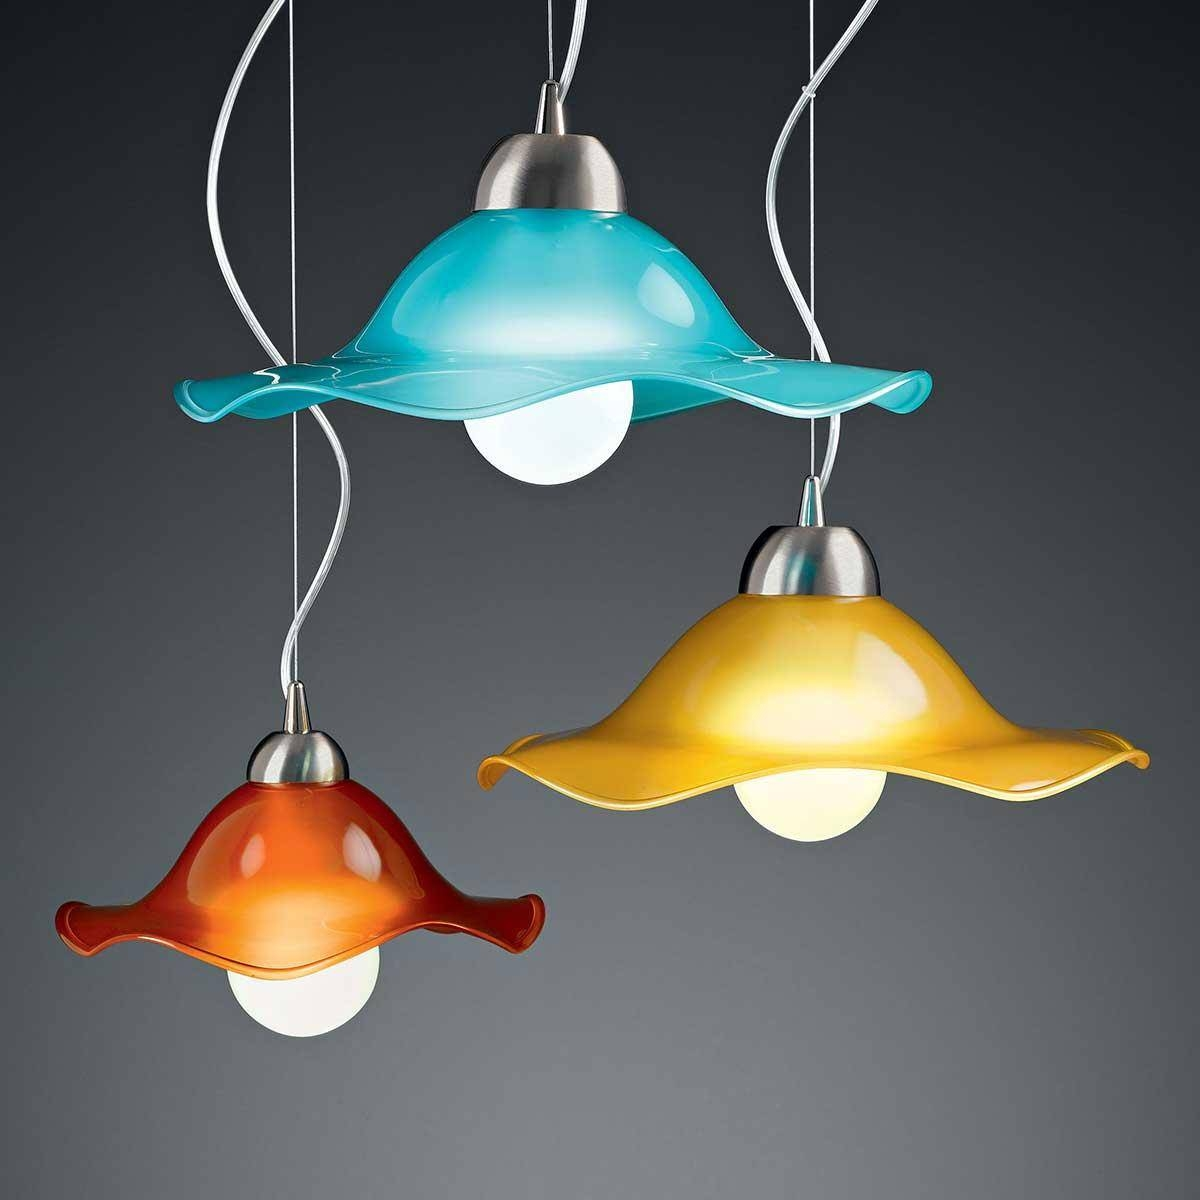 Murano Glass Pendant Lights - Murano Glass Chandeliers with Murano Glass Lights Pendants (Image 9 of 15)